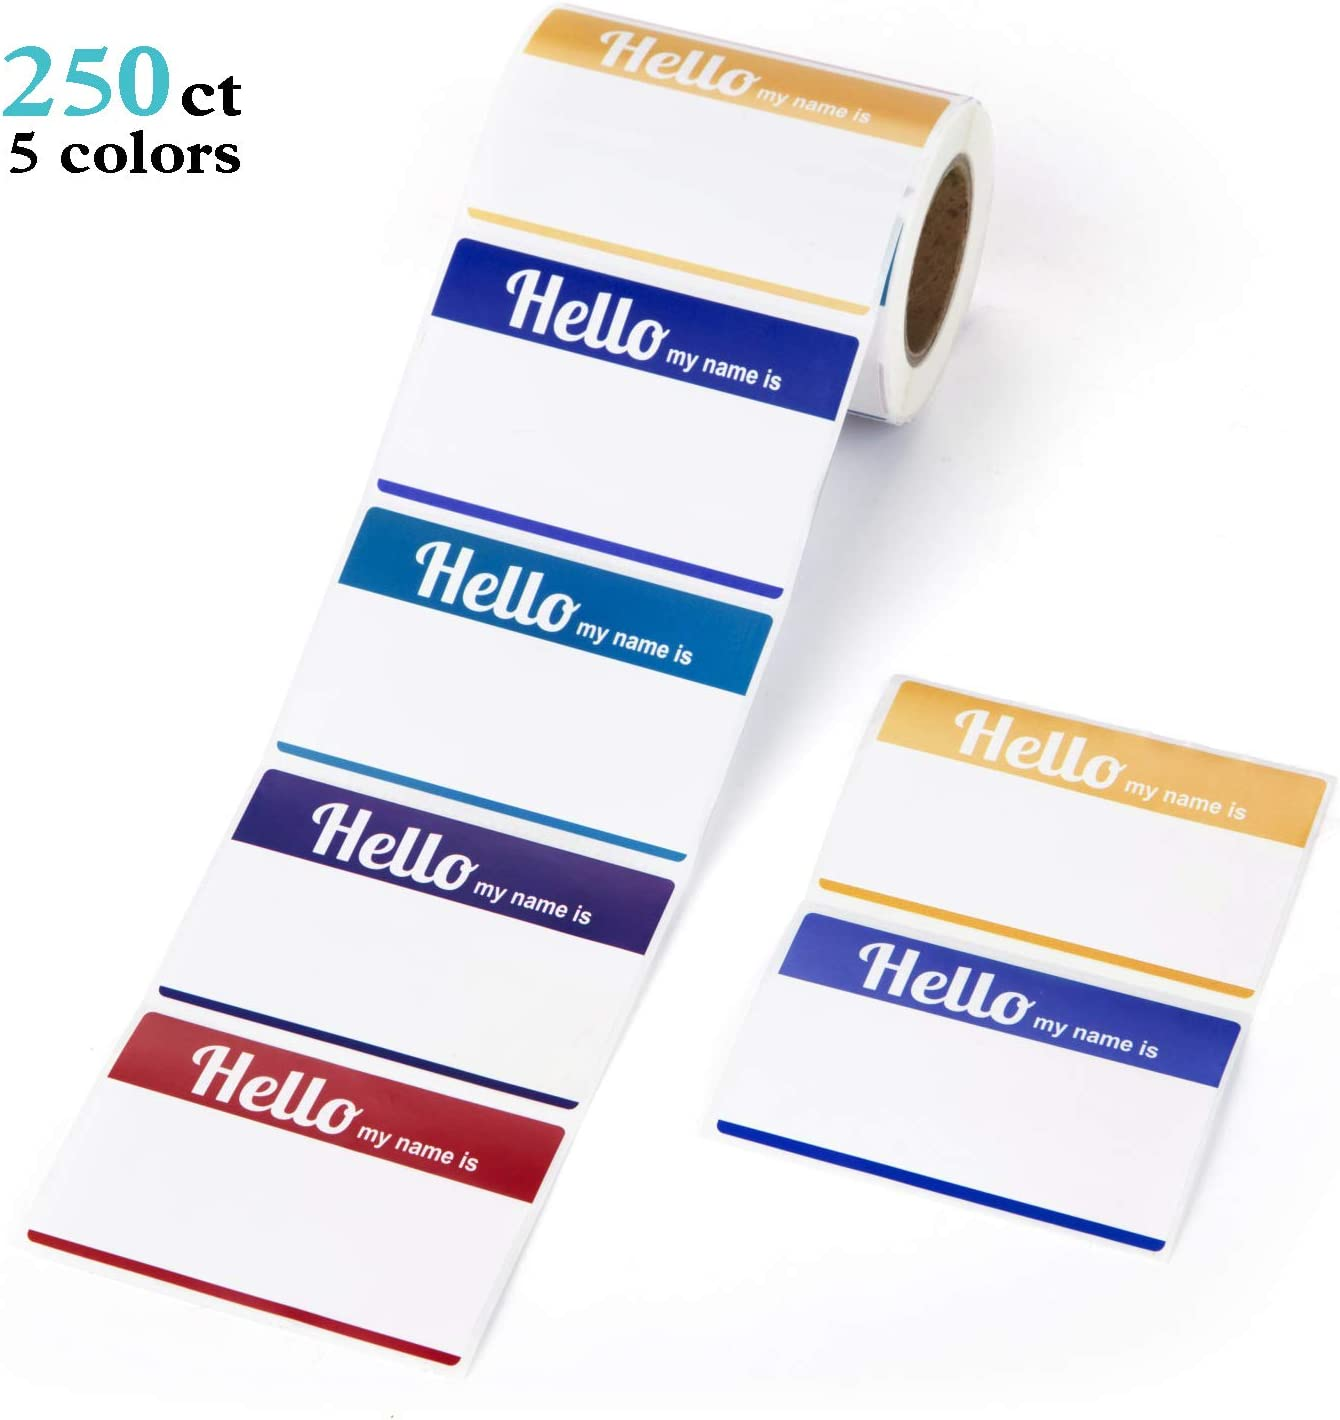 School Meeting Teachers Mionno 5 Colors Adhesive Name Tags 500pc 3.5 x2.25 Plain Name Tag Sticker//Category Tags for Office Parties Kindergarten Warehouses and Mailing